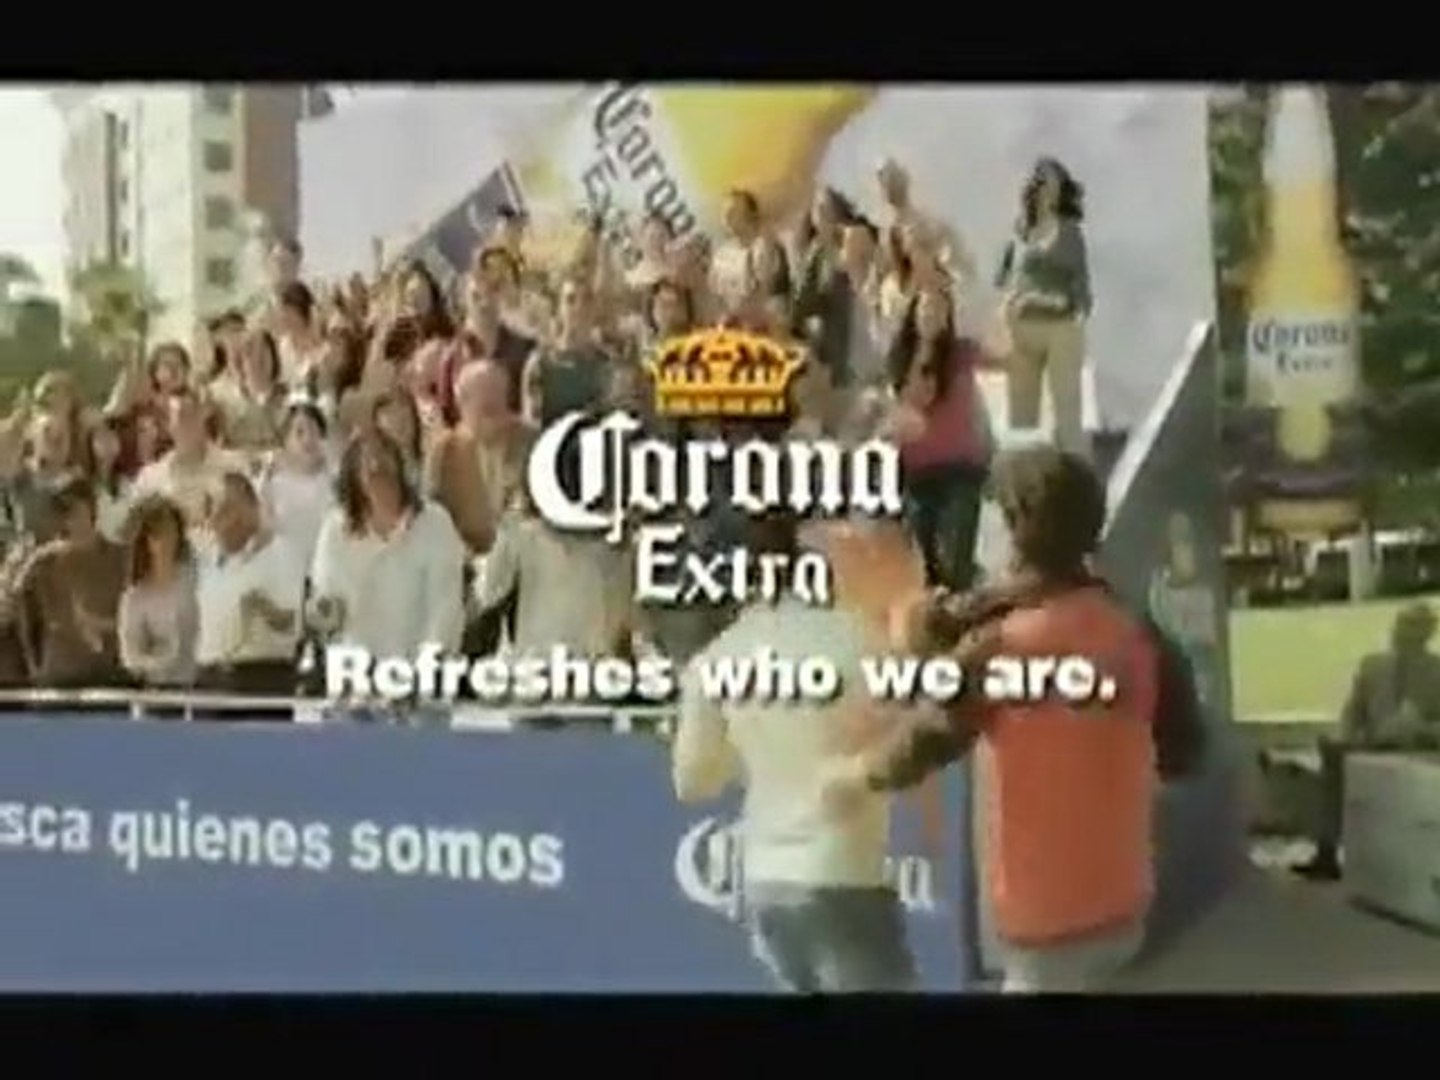 Best Corona song commercials